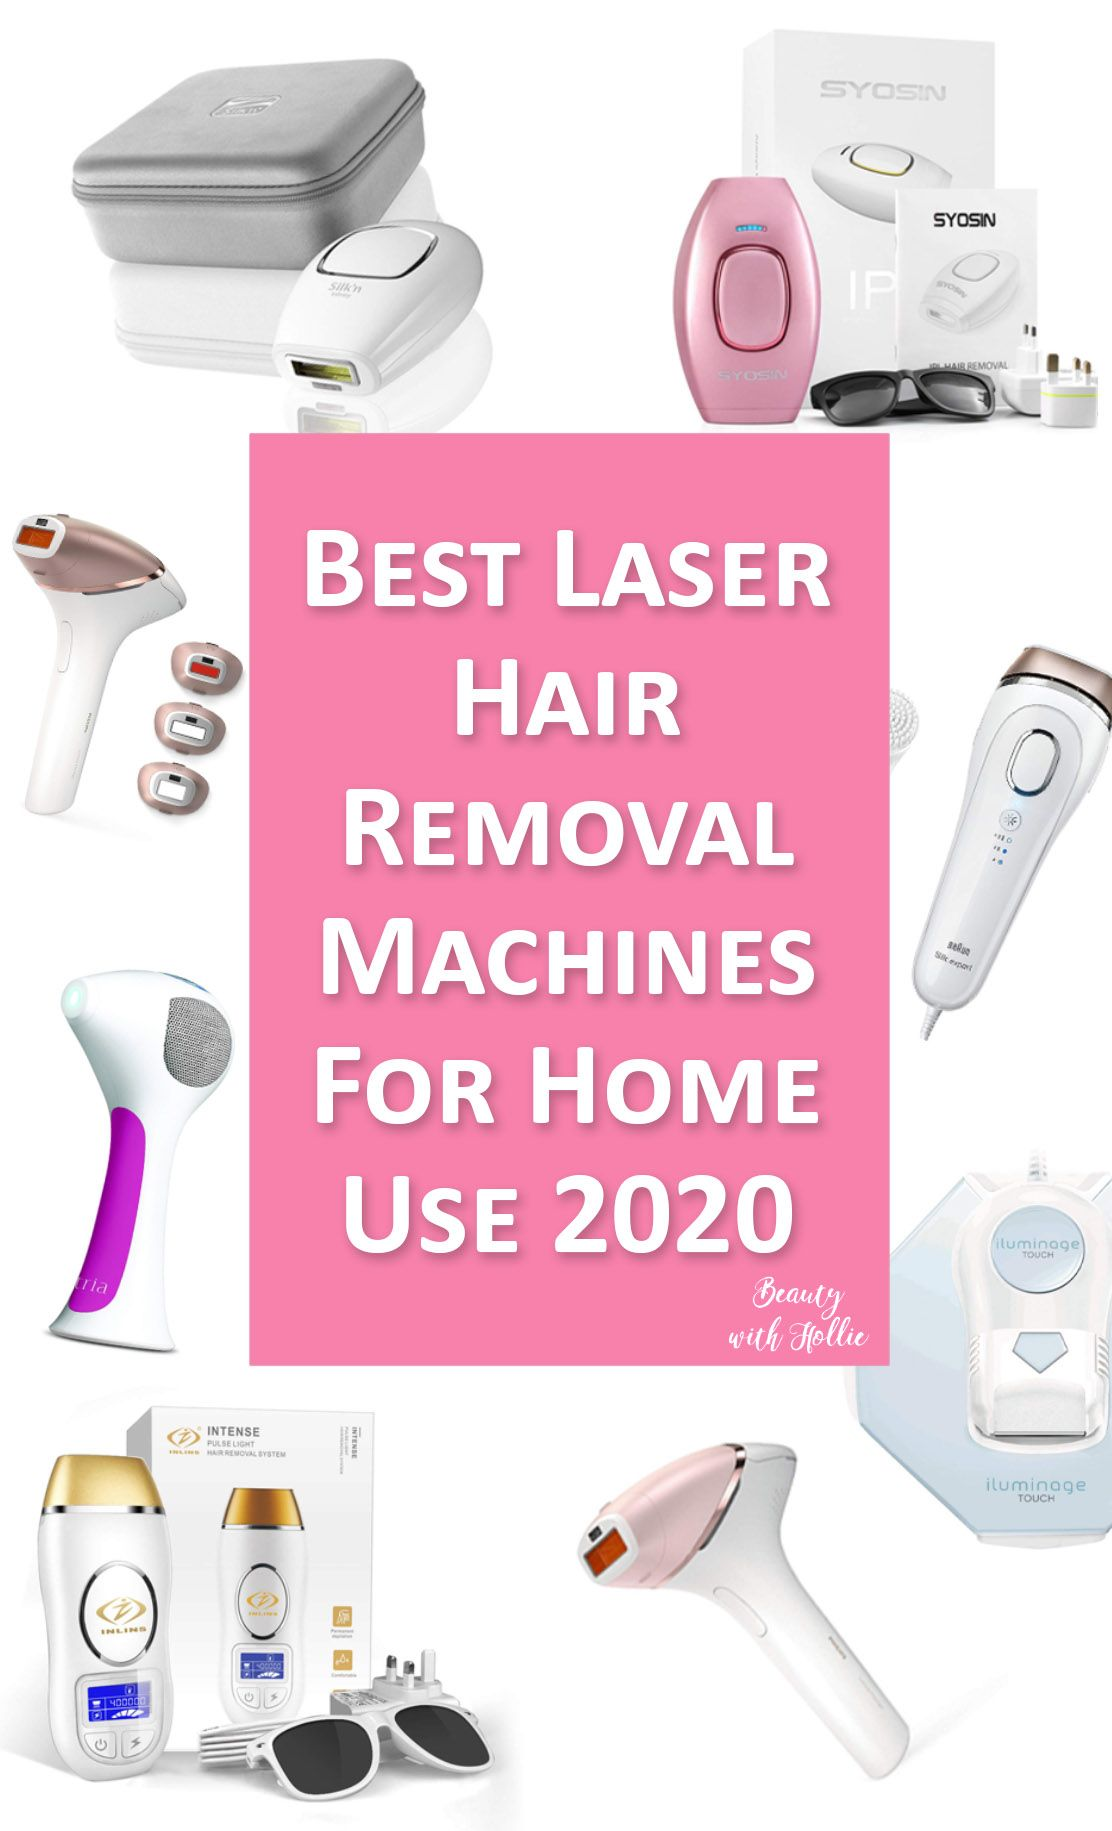 Best Laser Hair Removal Machines For Home Use 2020 In 2020 Laser Hair Removal Machine Best Laser Hair Removal Bikini Hair Removal